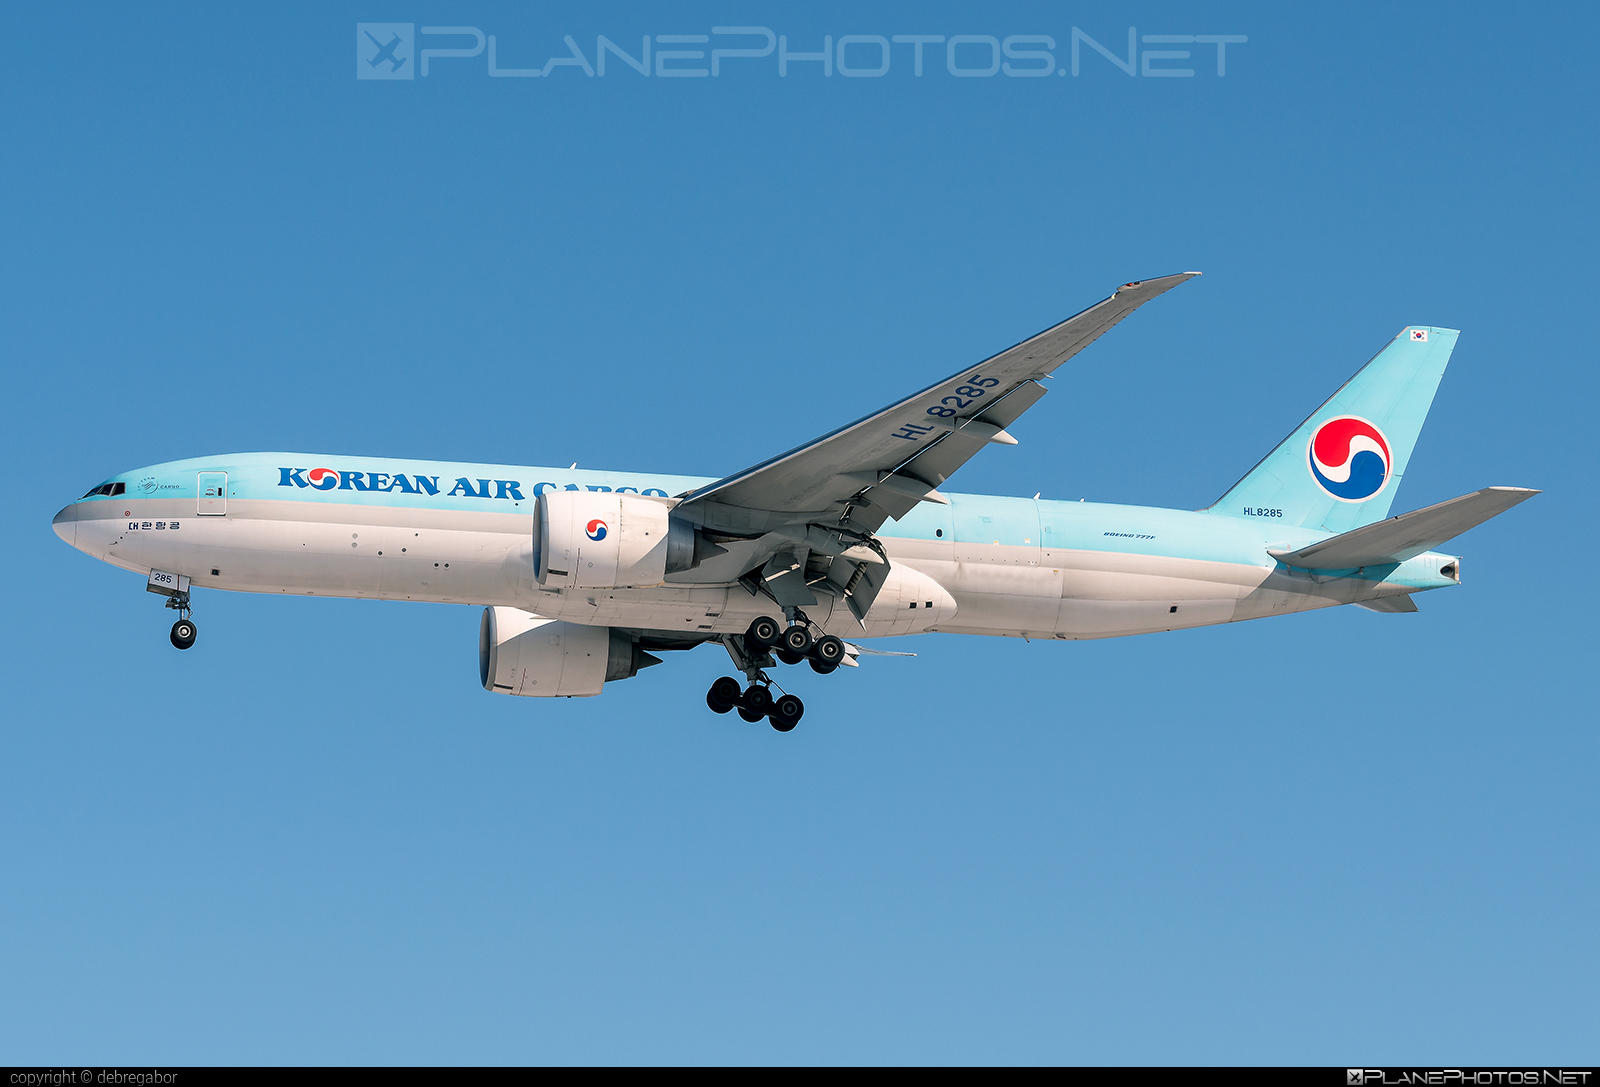 Boeing 777F - HL8285 operated by Korean Air Cargo #b777 #b777f #b777freighter #boeing #boeing777 #koreanair #koreanaircargo #tripleseven